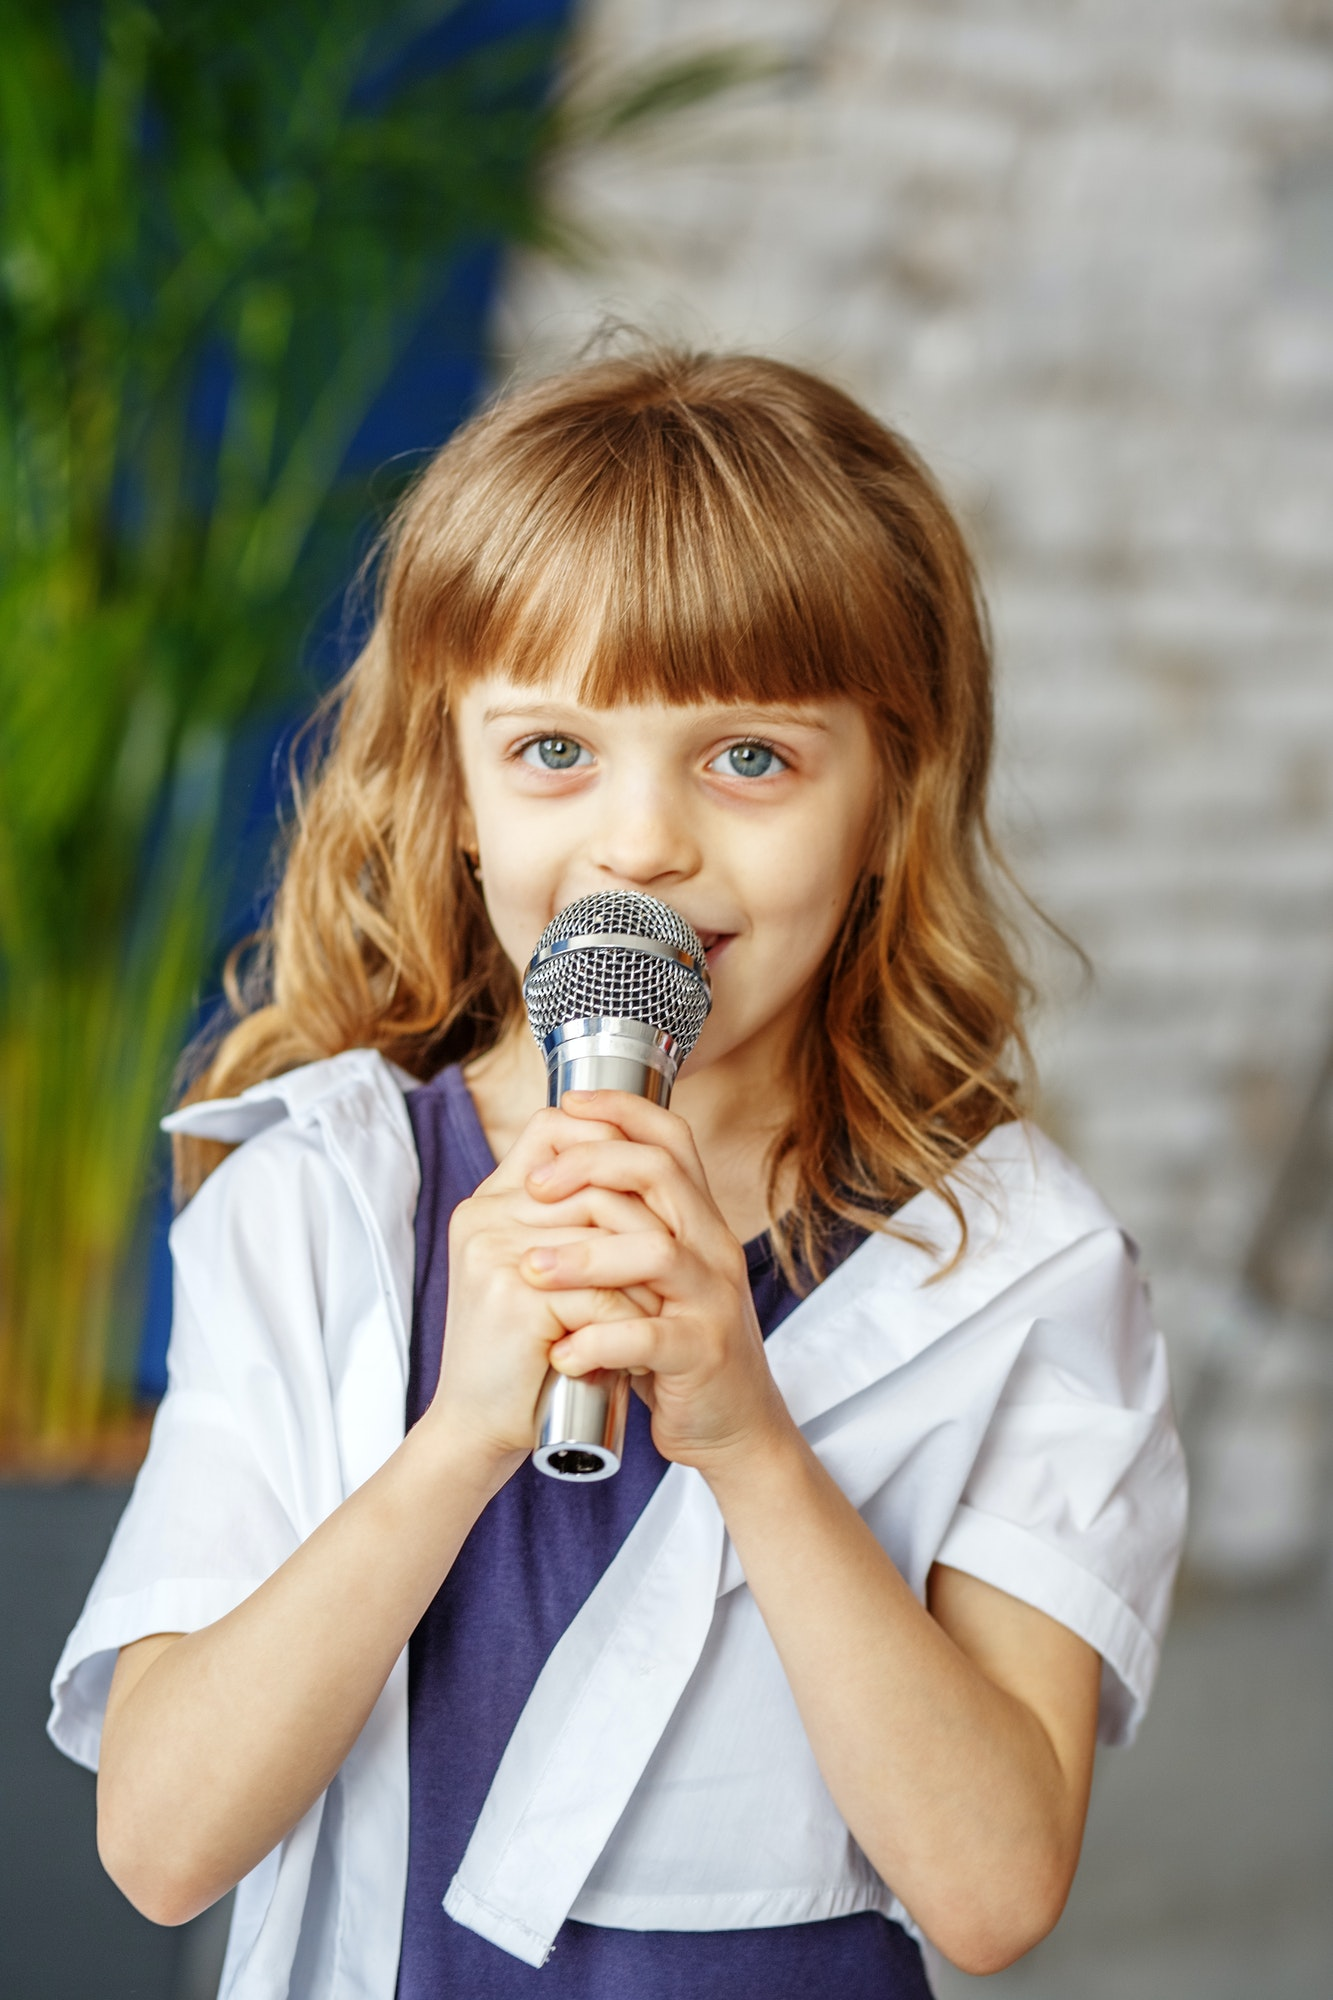 A little beautiful kid sings a song in a microphone. The concept